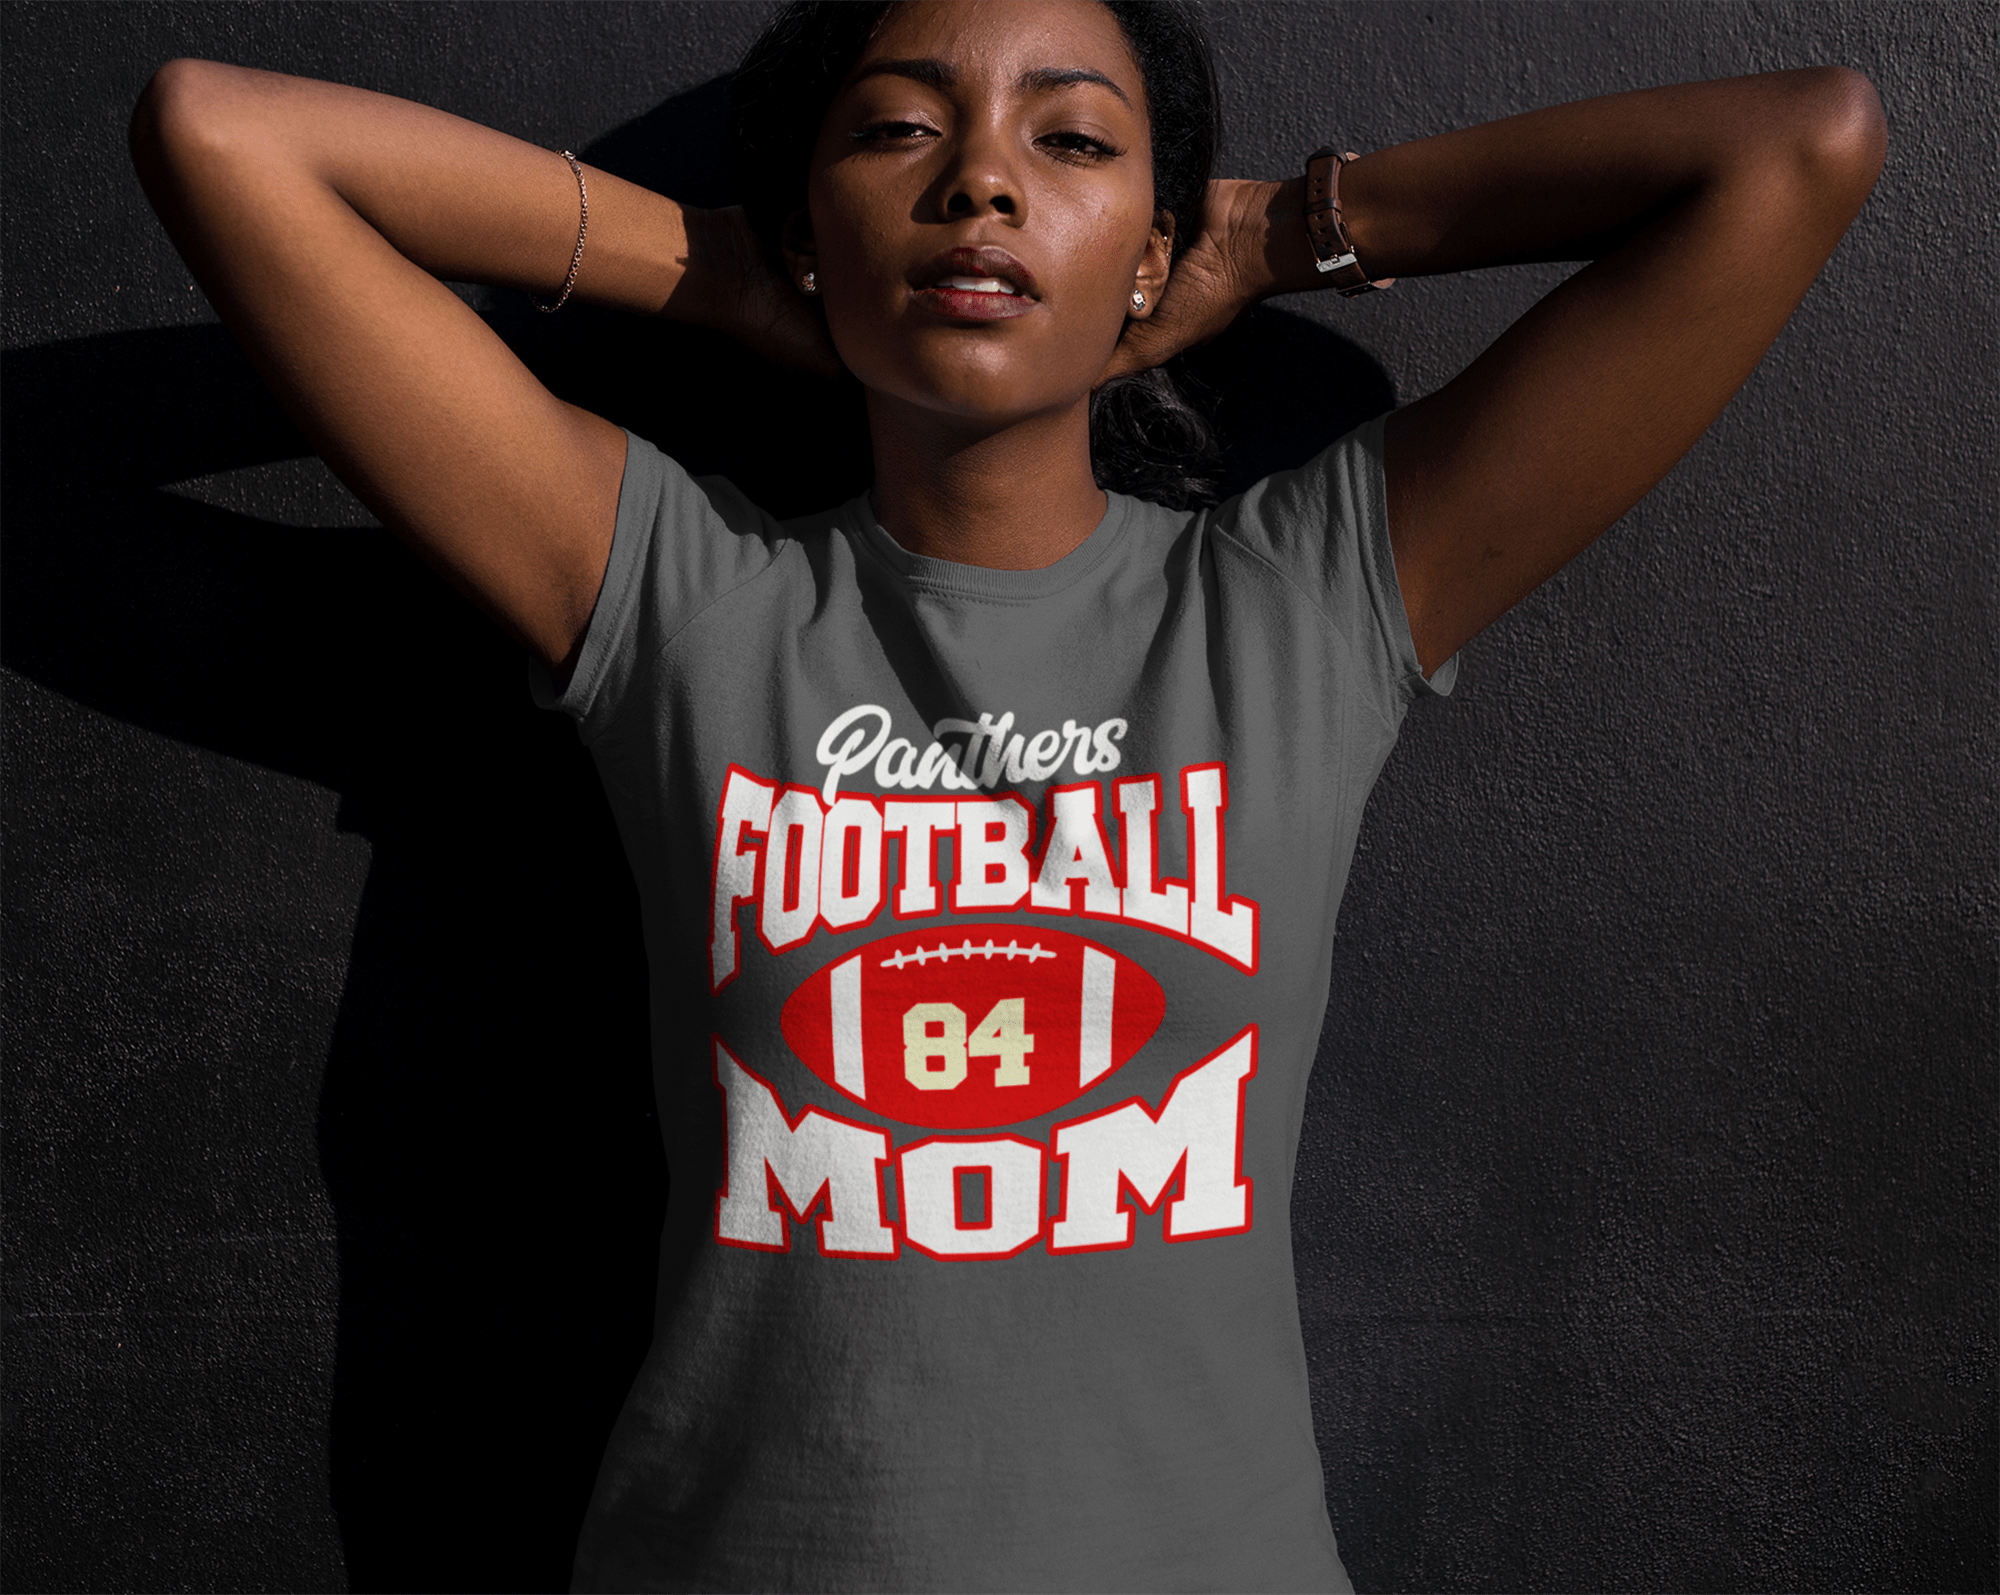 Panthers Custom Personalized Name /& Number Woman/'s T-shirt